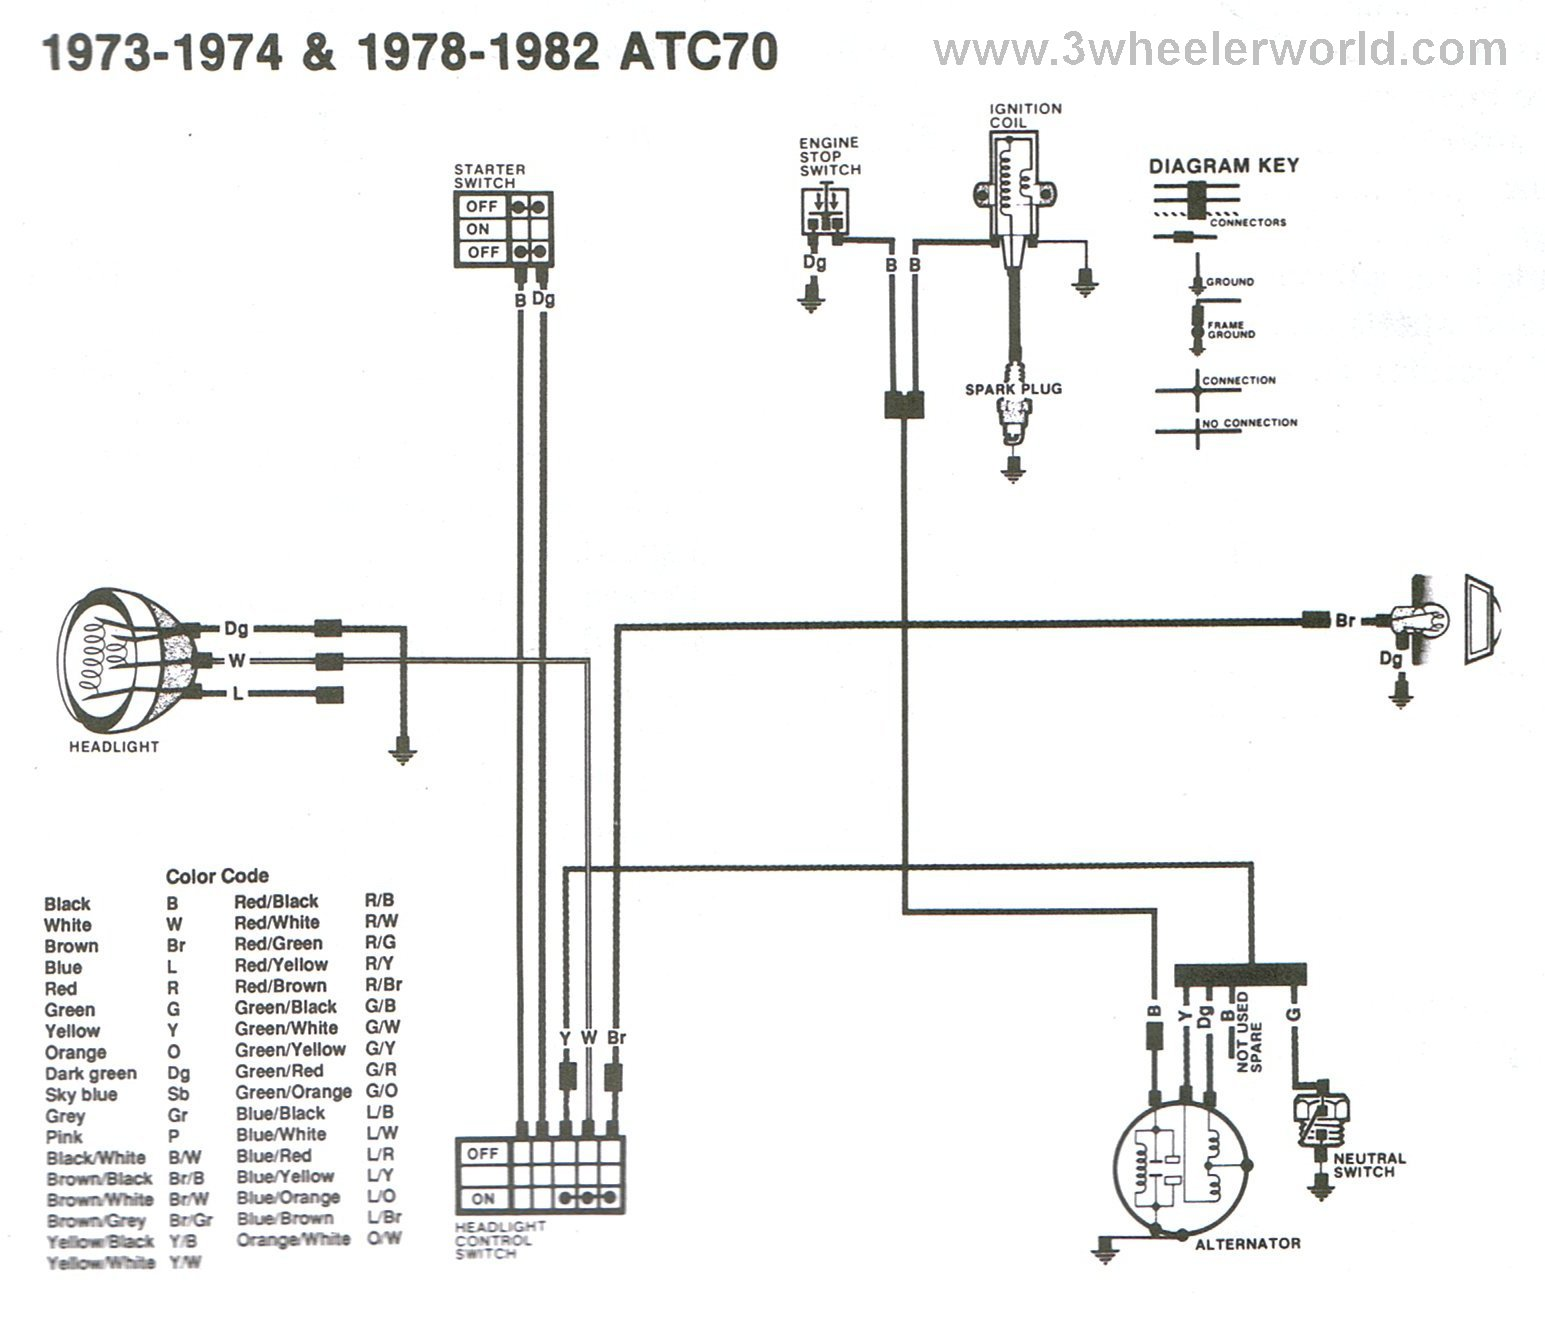 1970 Honda Trail 70 Wiring Diagram Wire Data Schema Lifan 70cc Enthusiast Diagrams U2022 Rh Rasalibre Co 125 200cc